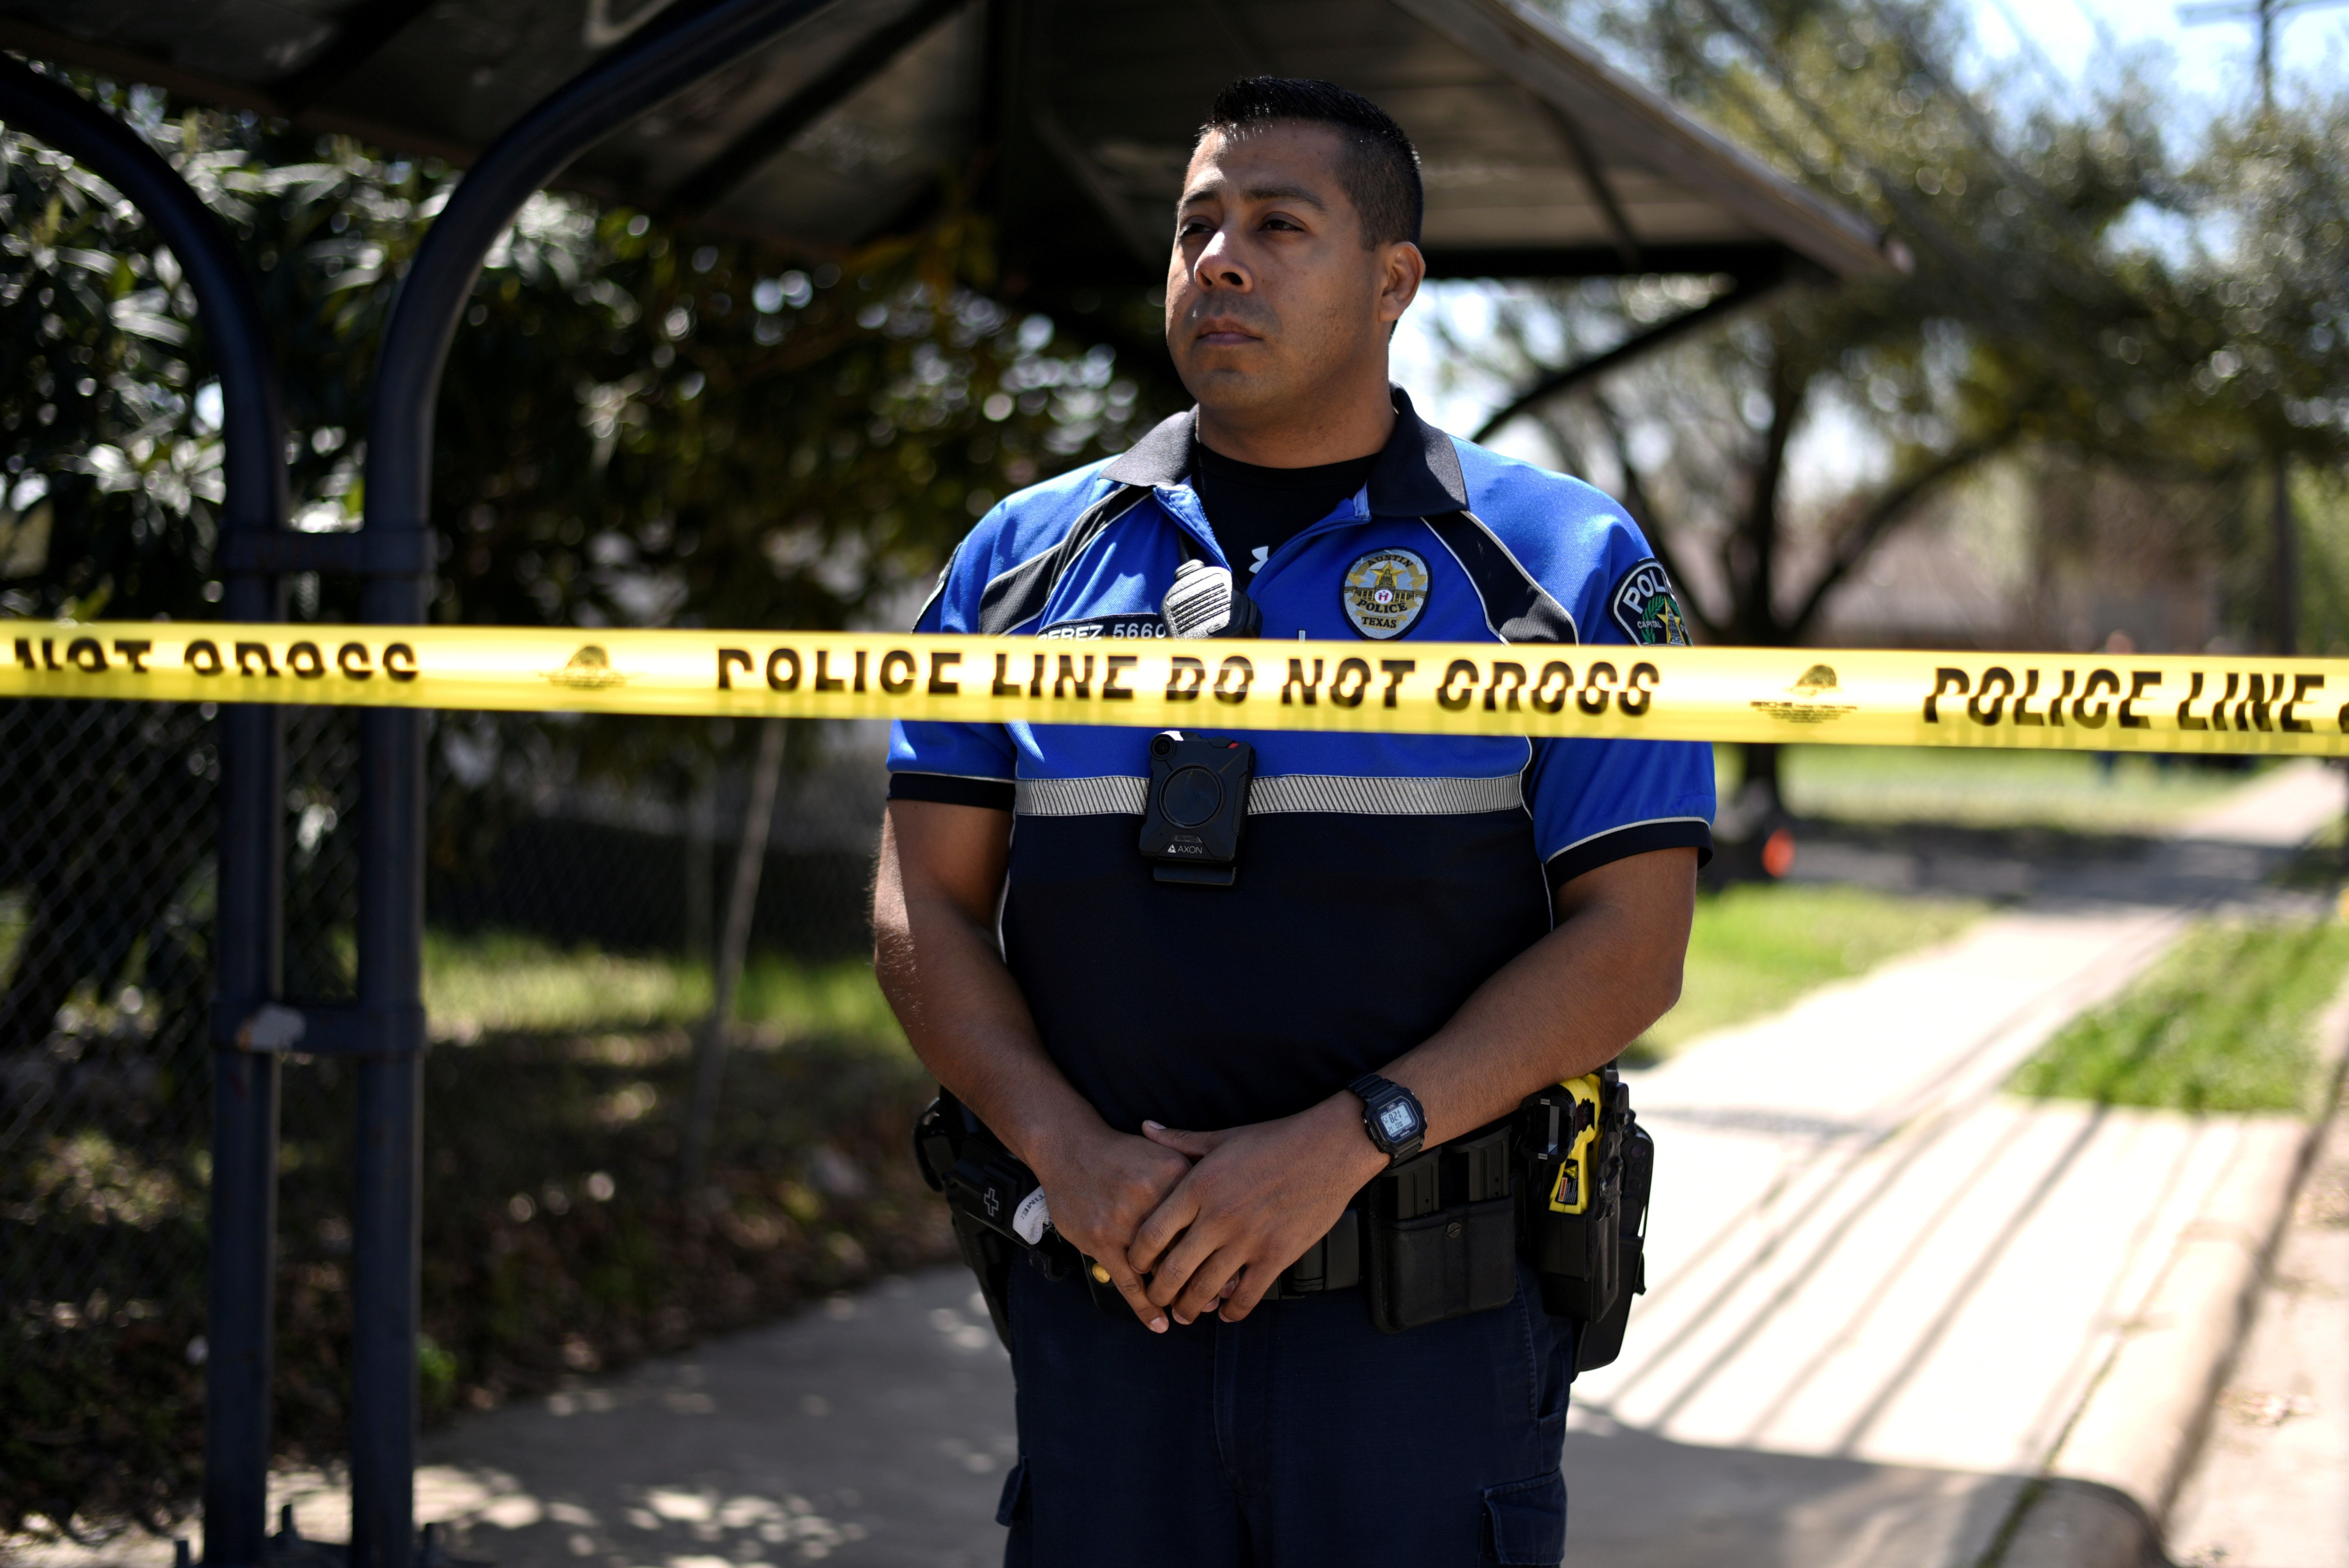 A police officer guards the scene of an explosion on Galindo Street in Austin, Texas, U.S., March 12, 2018. REUTERS/Sergio Flores